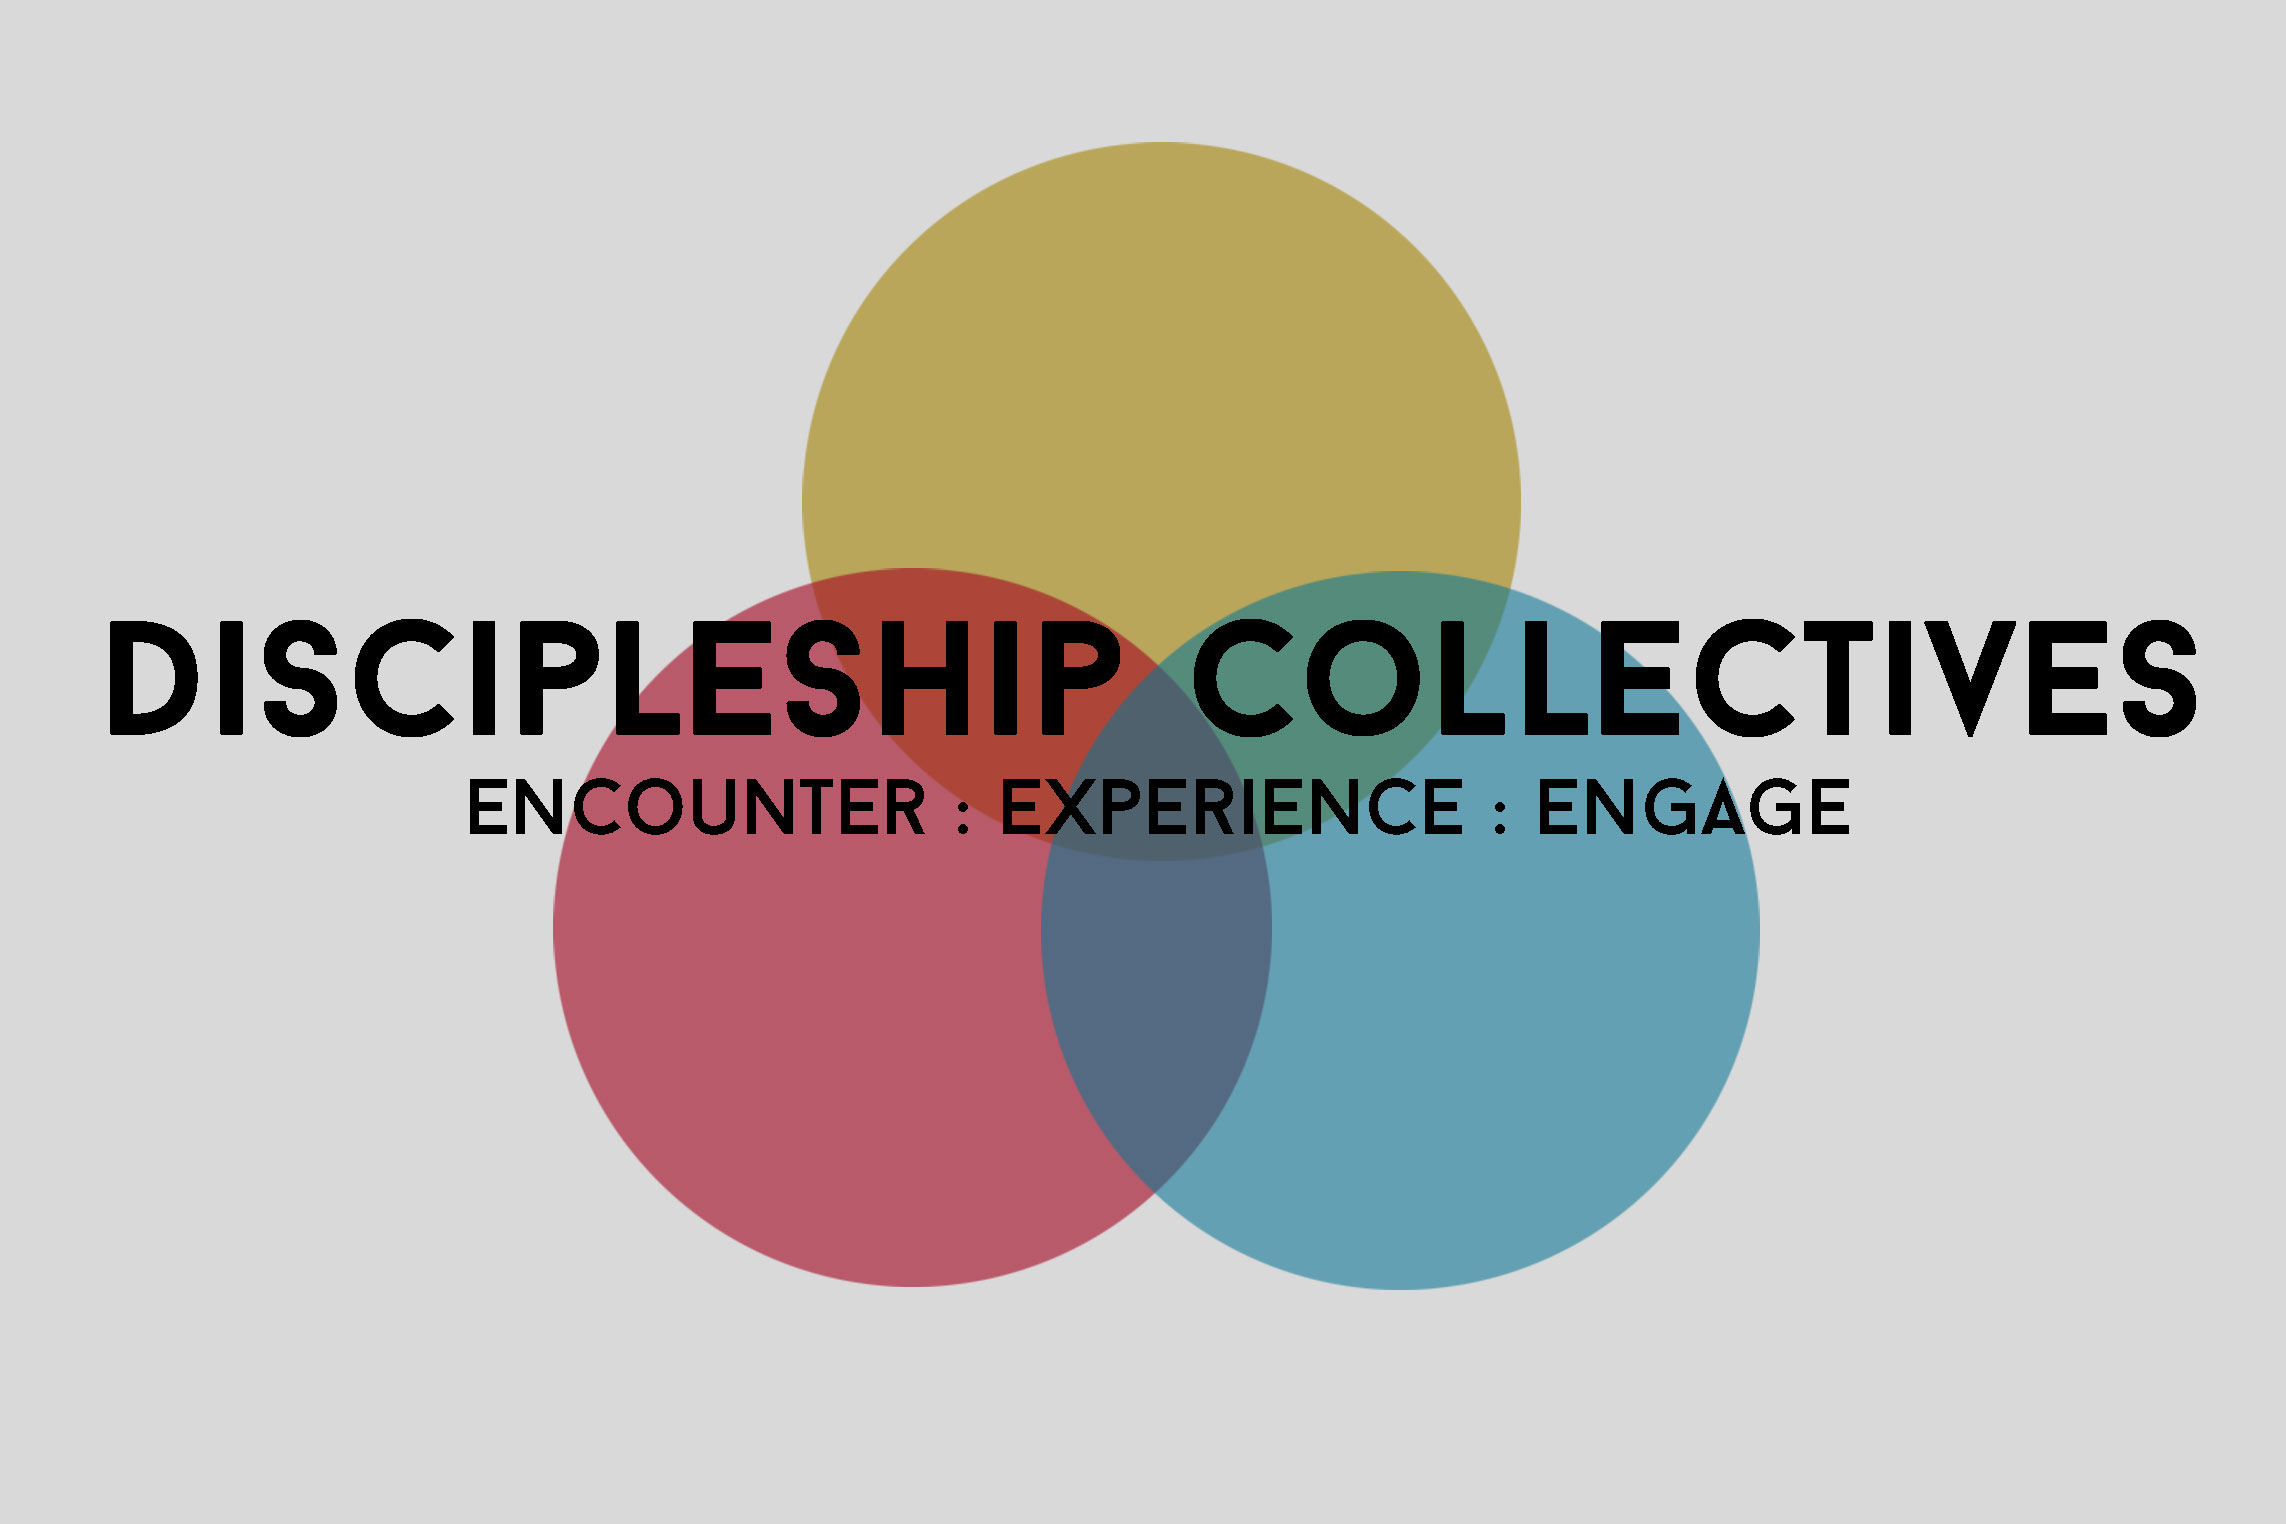 Discipleship Collectives Fall 2018